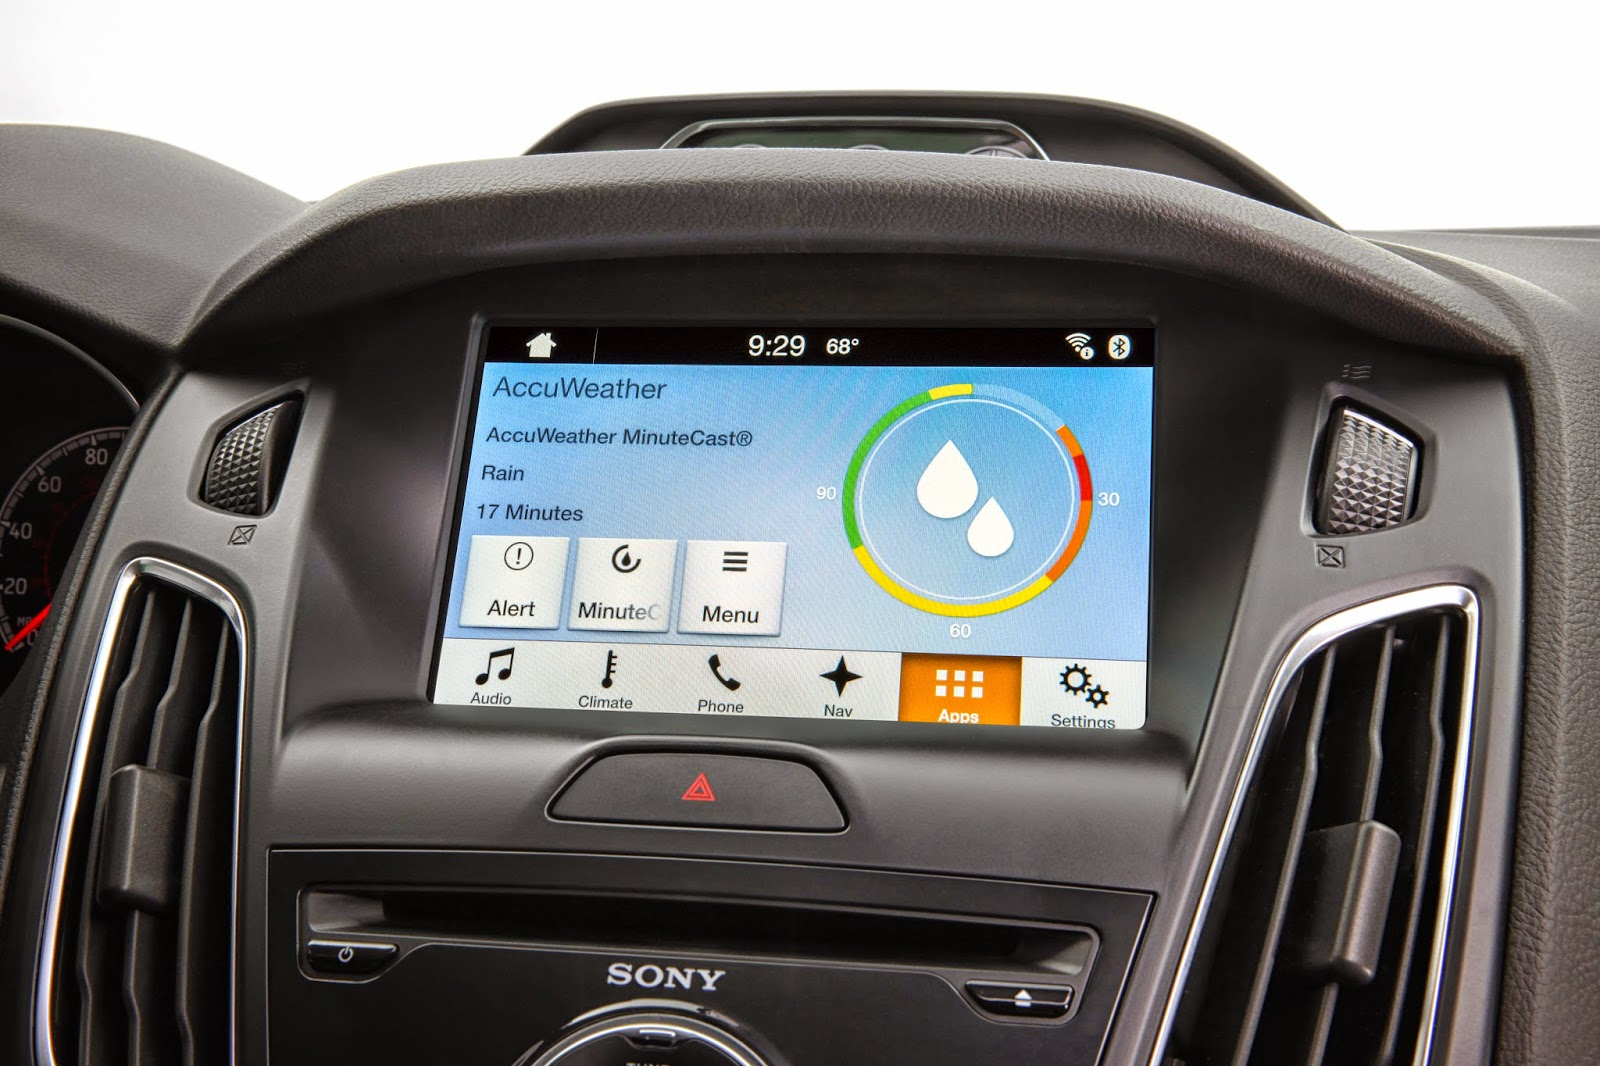 AccuWeather MinuteCast for Ford SYNC Offers Hyper-Local Weather Forecasts Minute-by-Minute